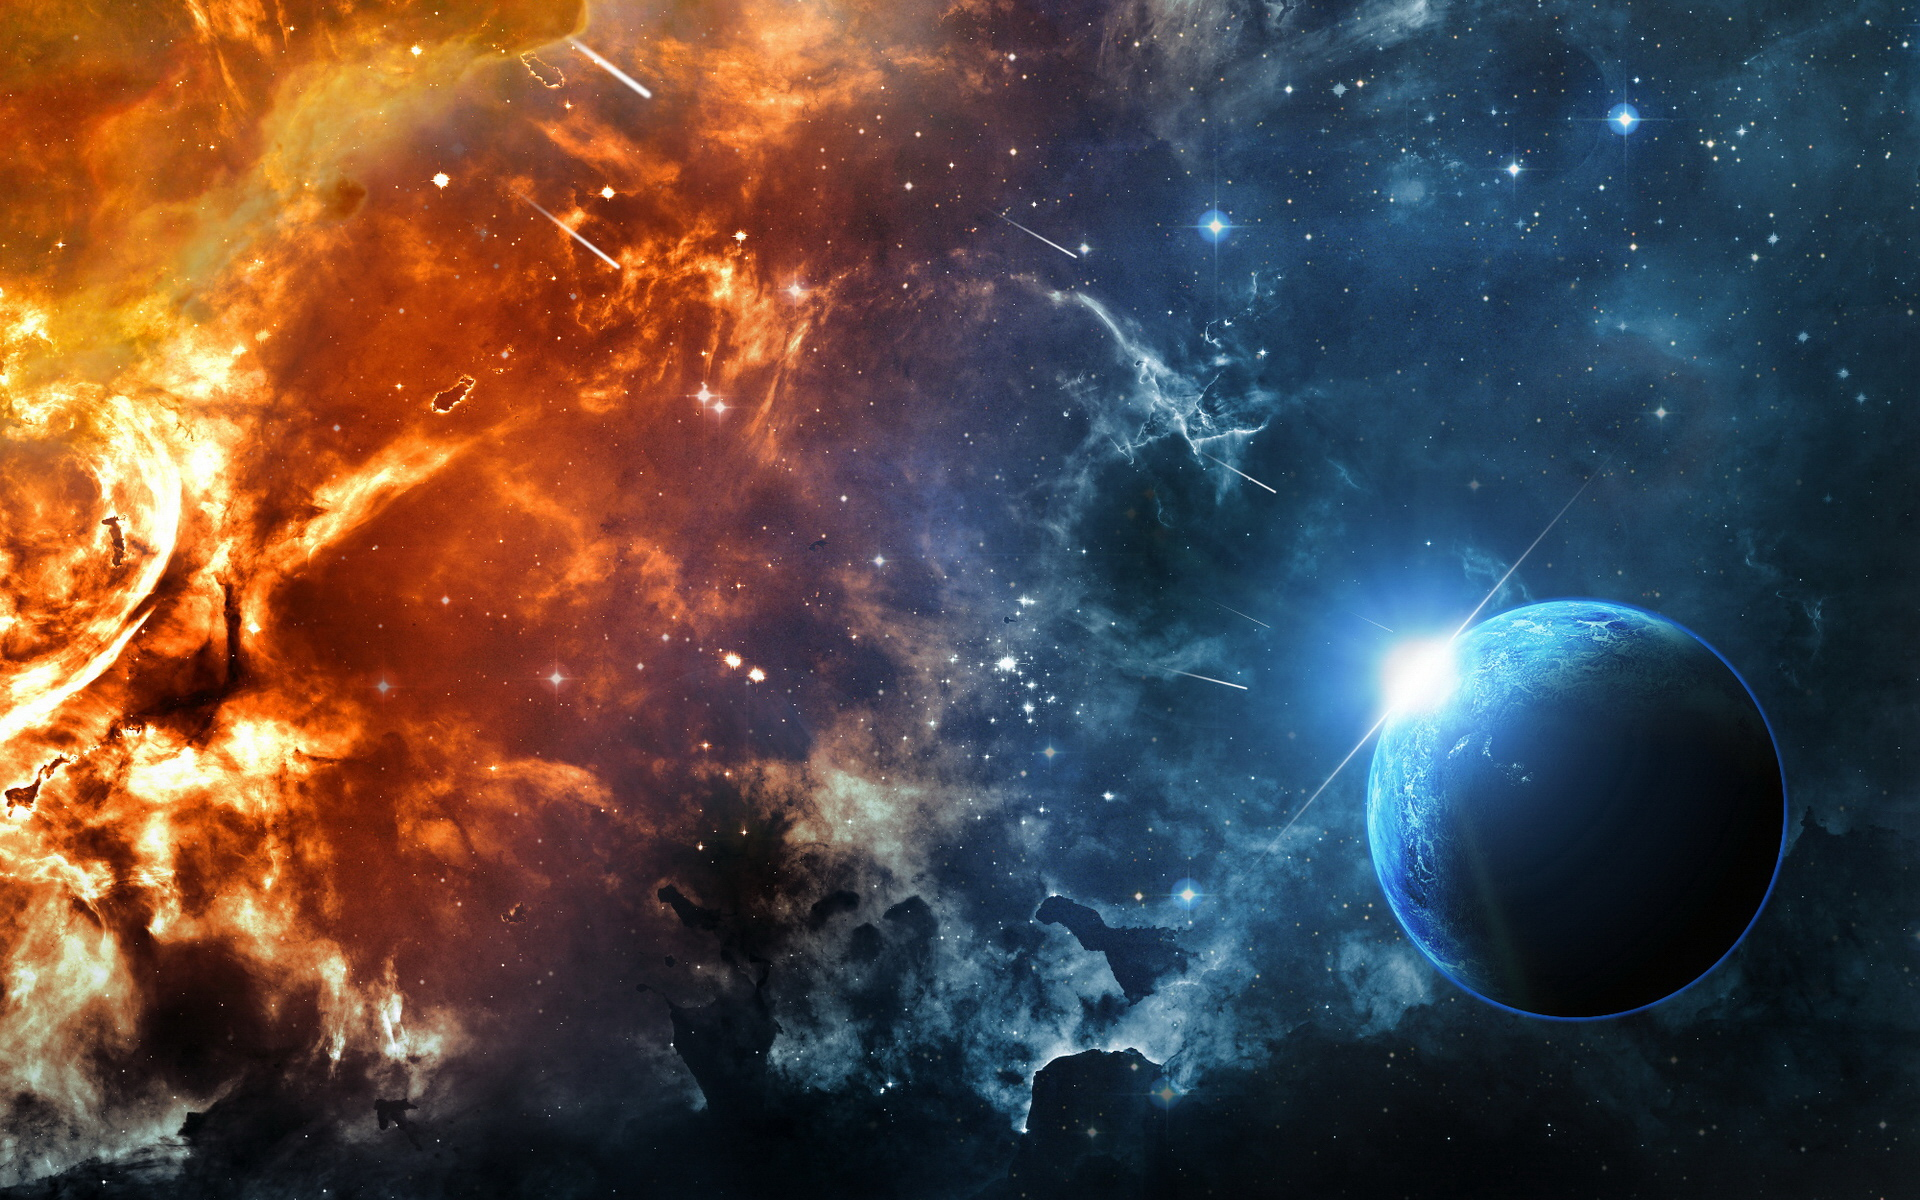 Coolest Wallpaper In The Universe